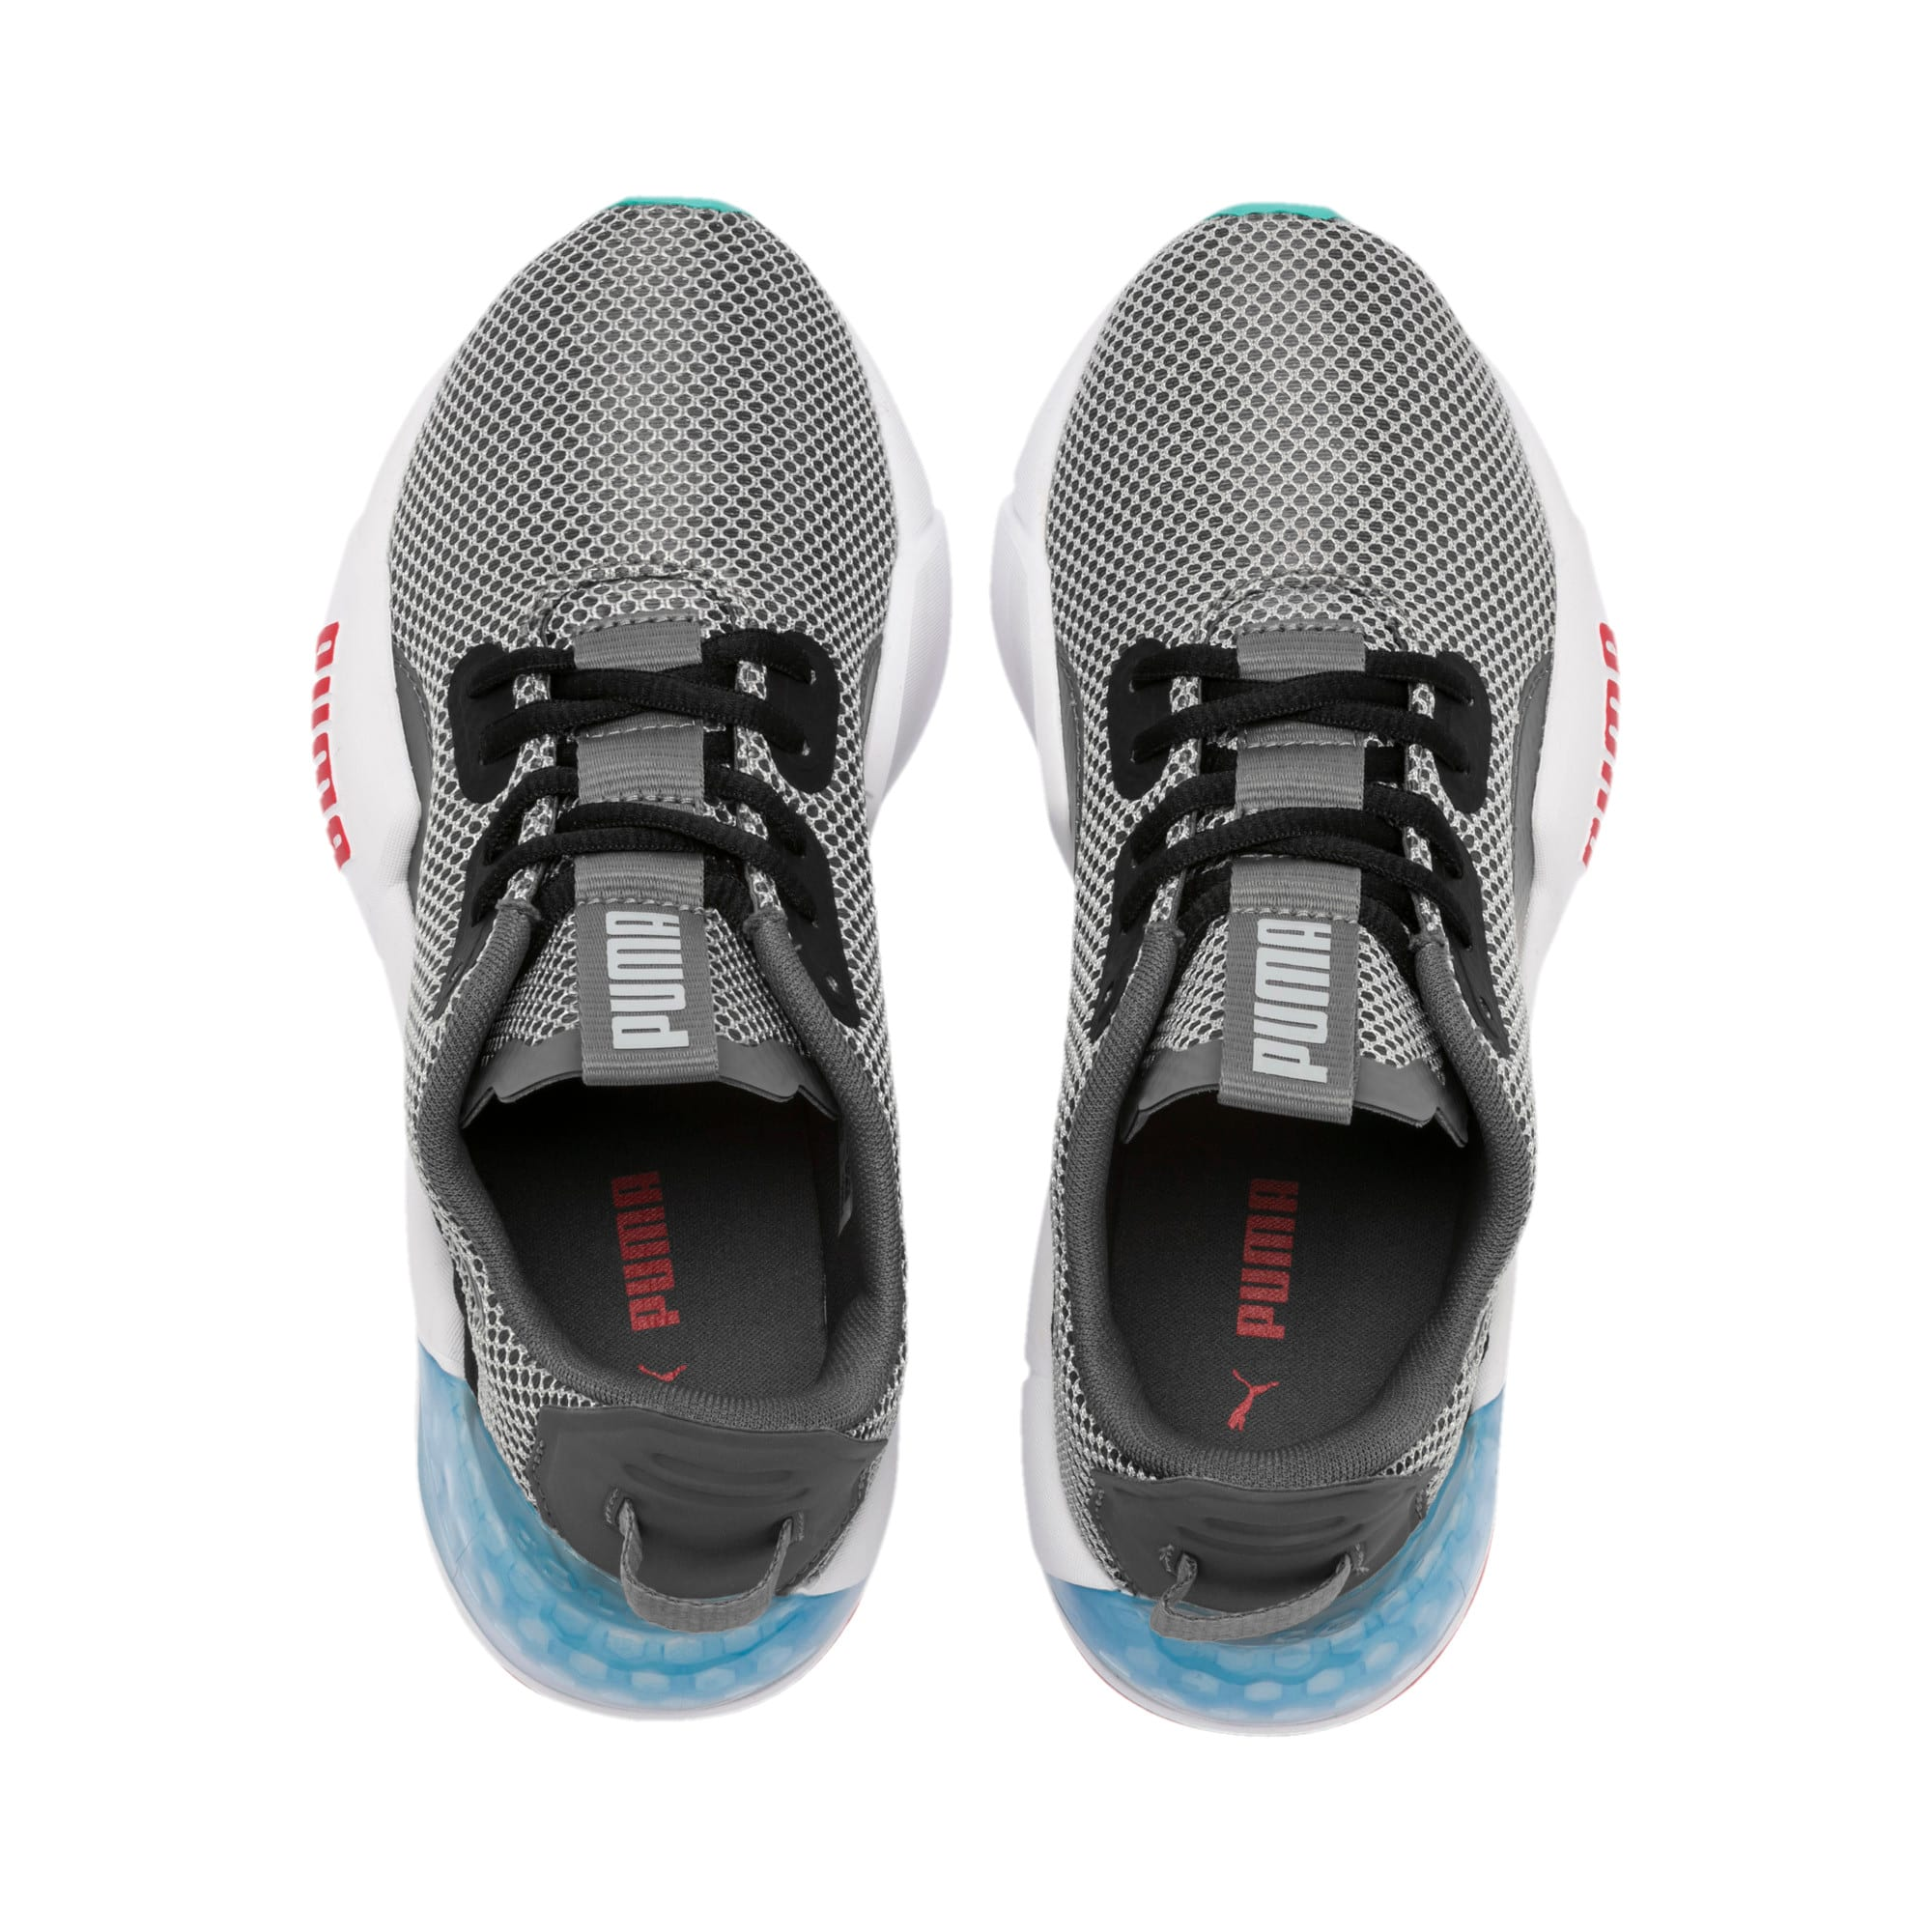 Thumbnail 6 of CELL Phase Youth Trainers, CASTLEROCK-Puma Black, medium-IND